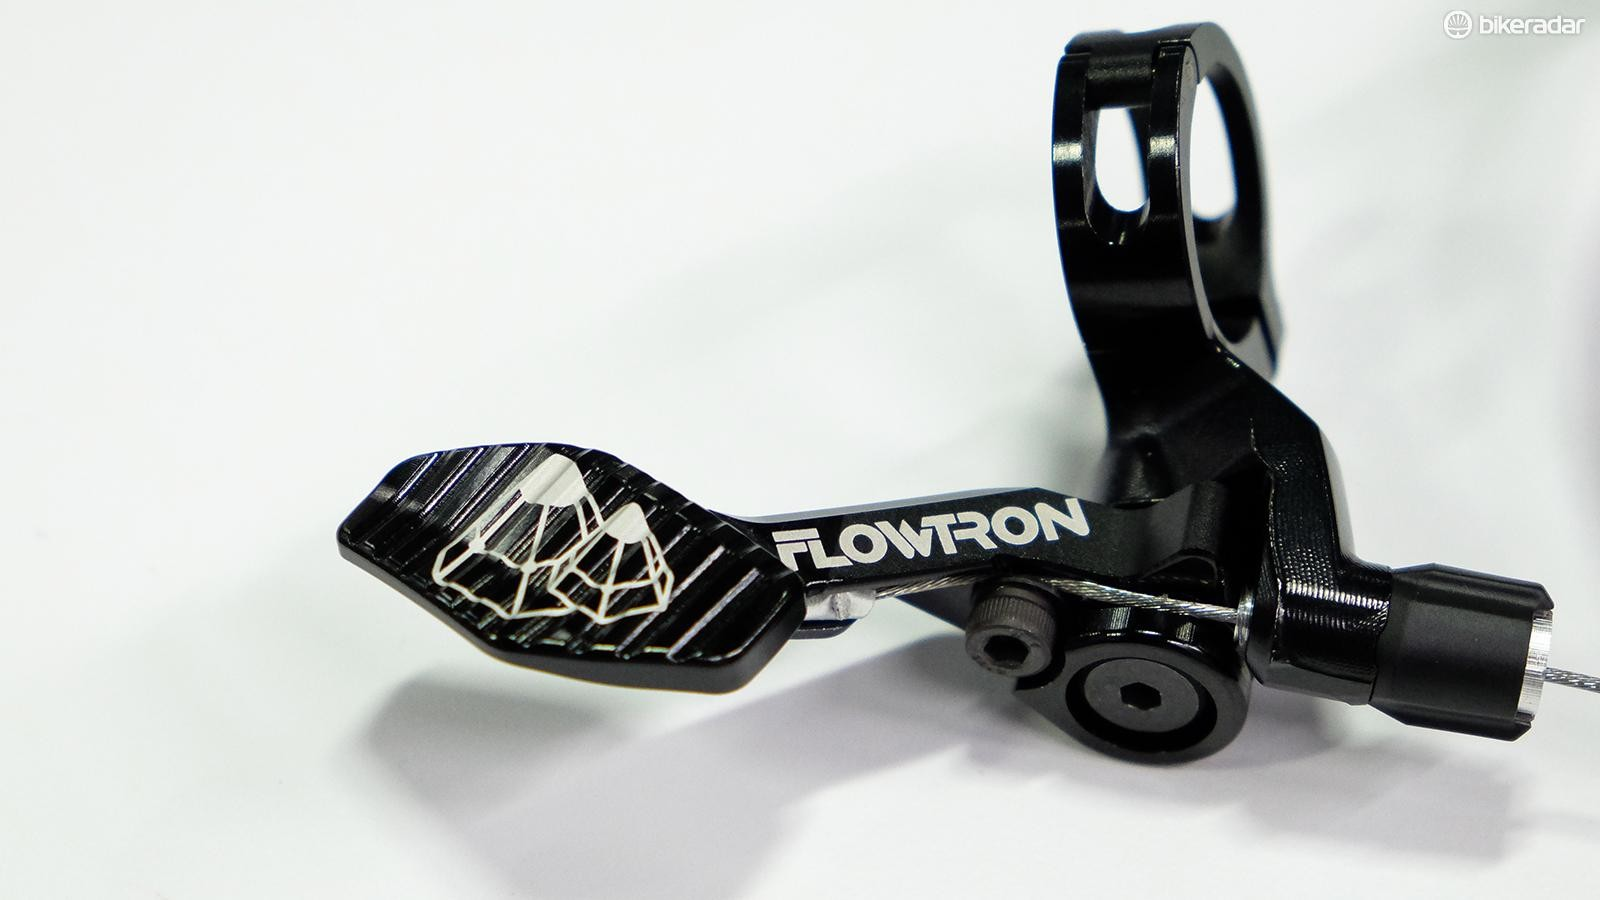 FSA didn't want to lose sales to aftermarket dropper levers, so it focused on making a well-designed lever